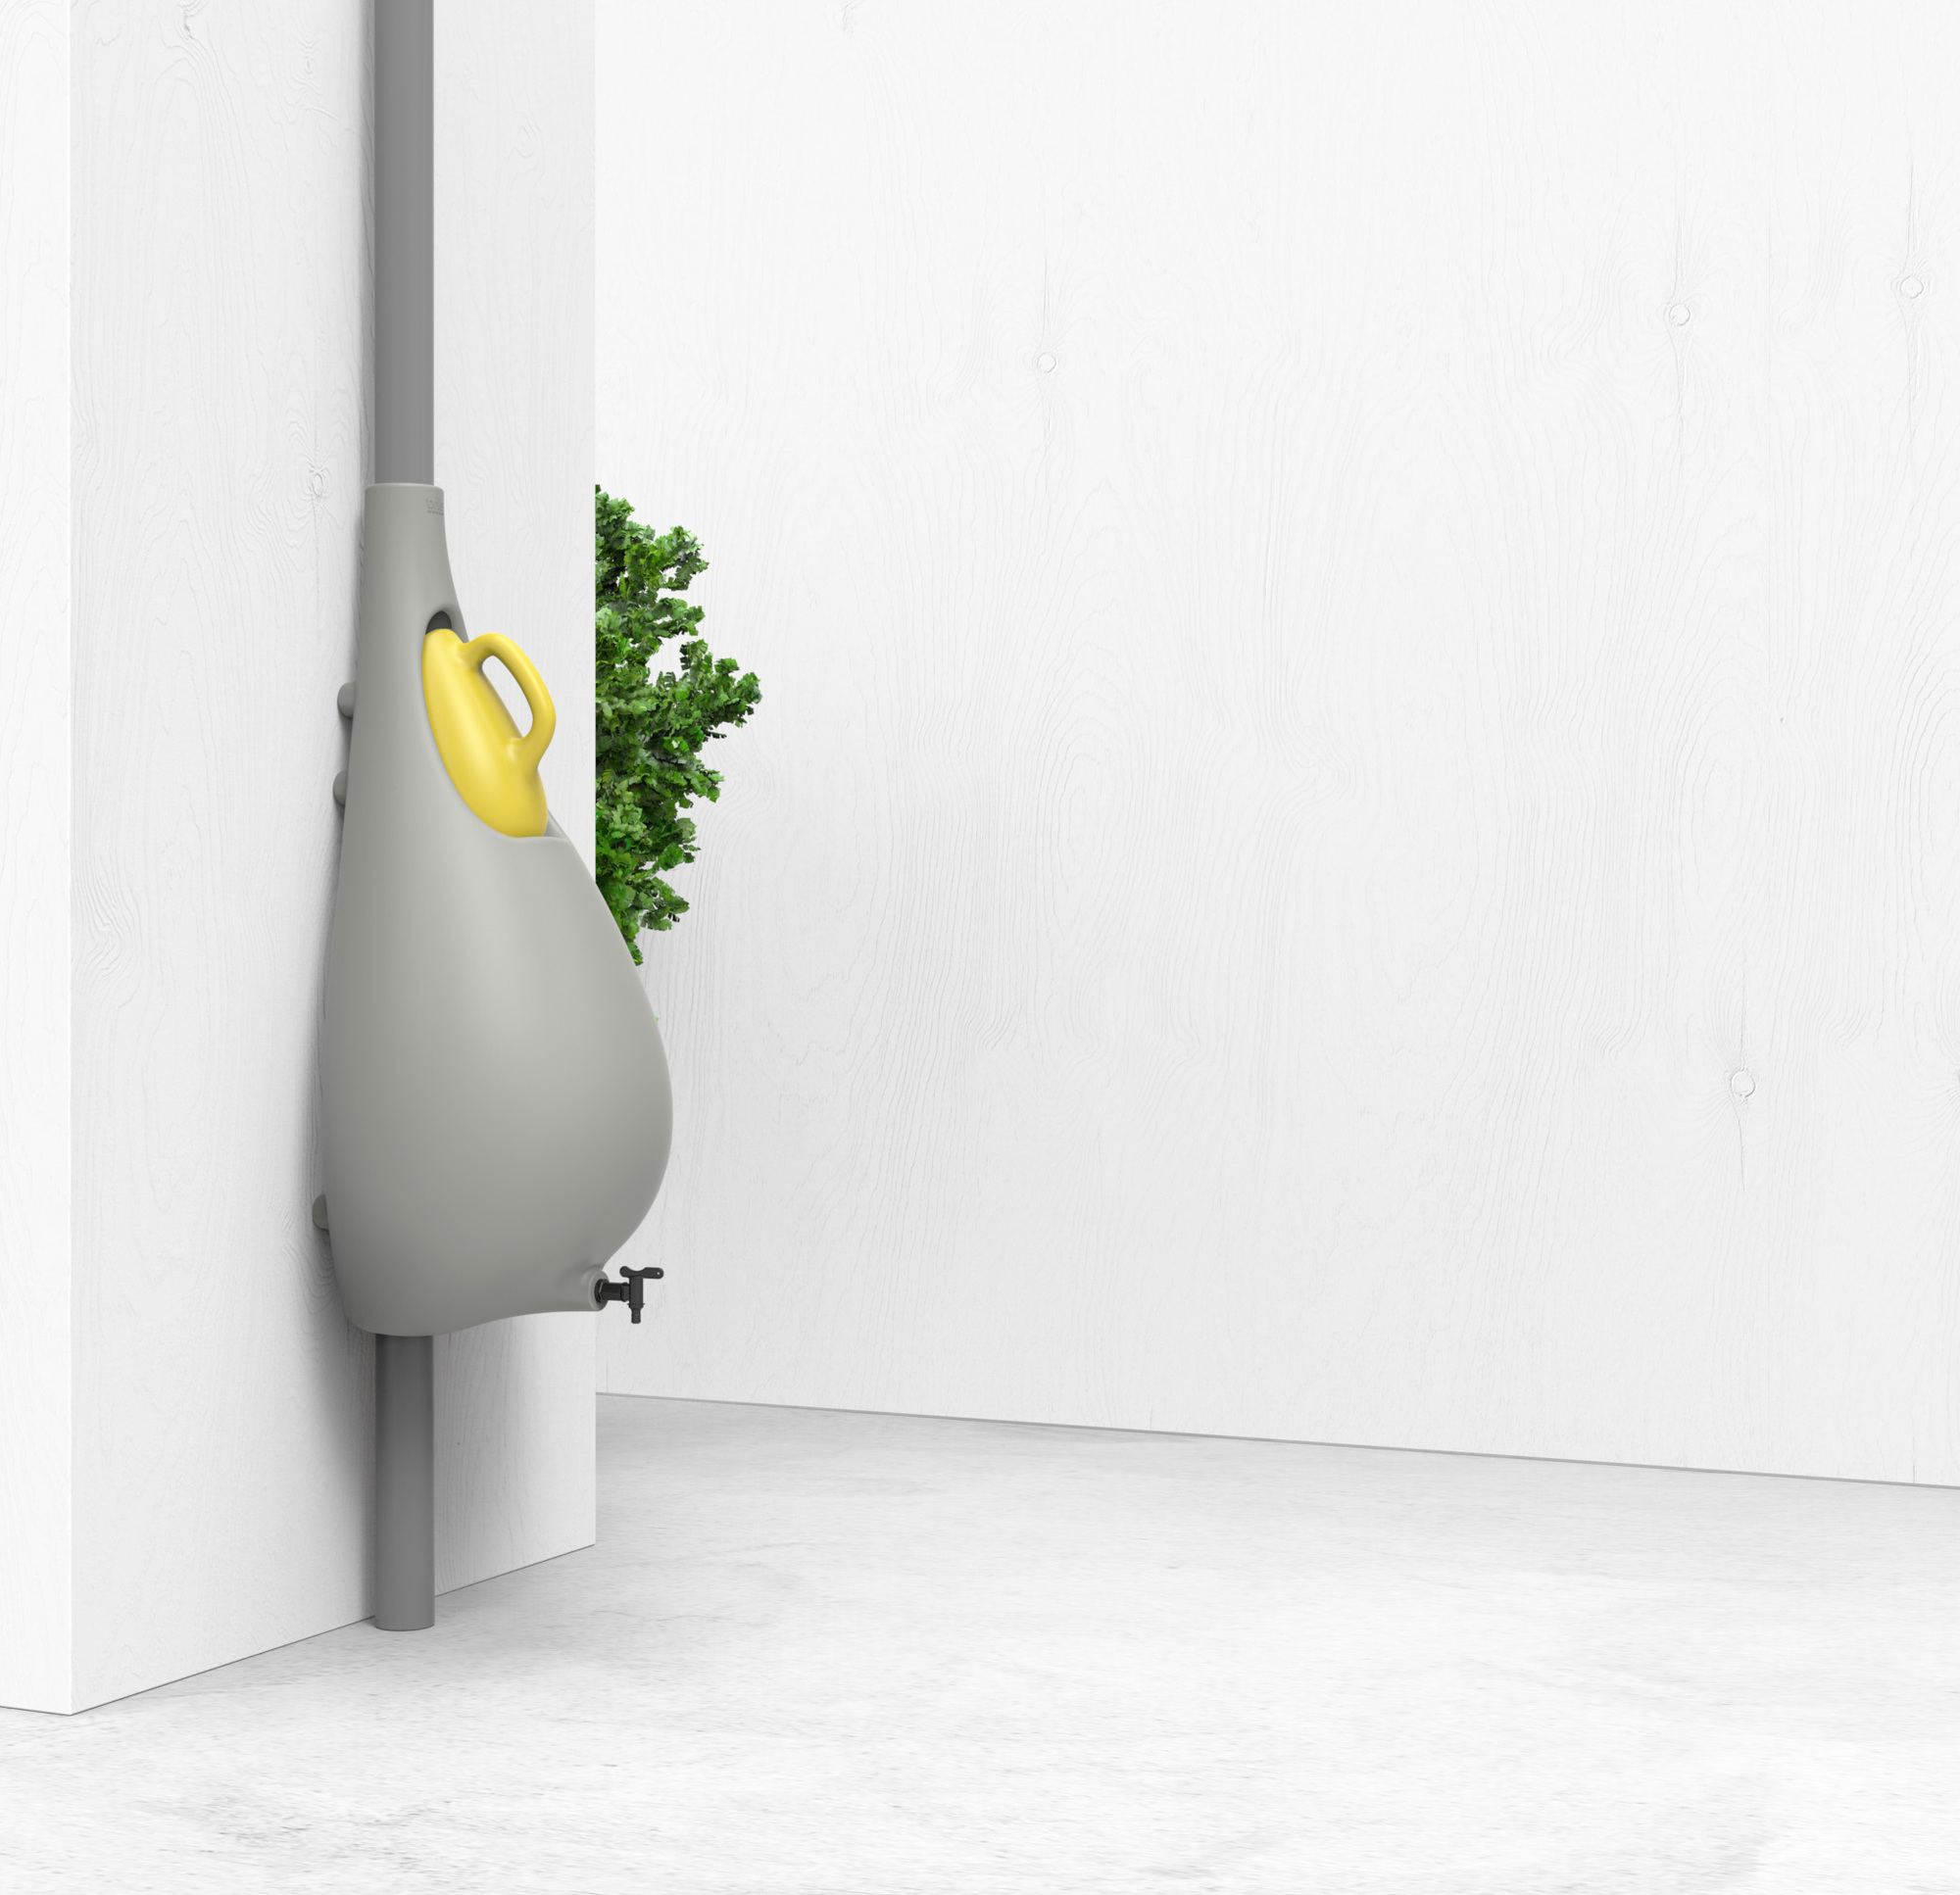 Sleek design of the rain barrel lets it fit in pretty much anywhere